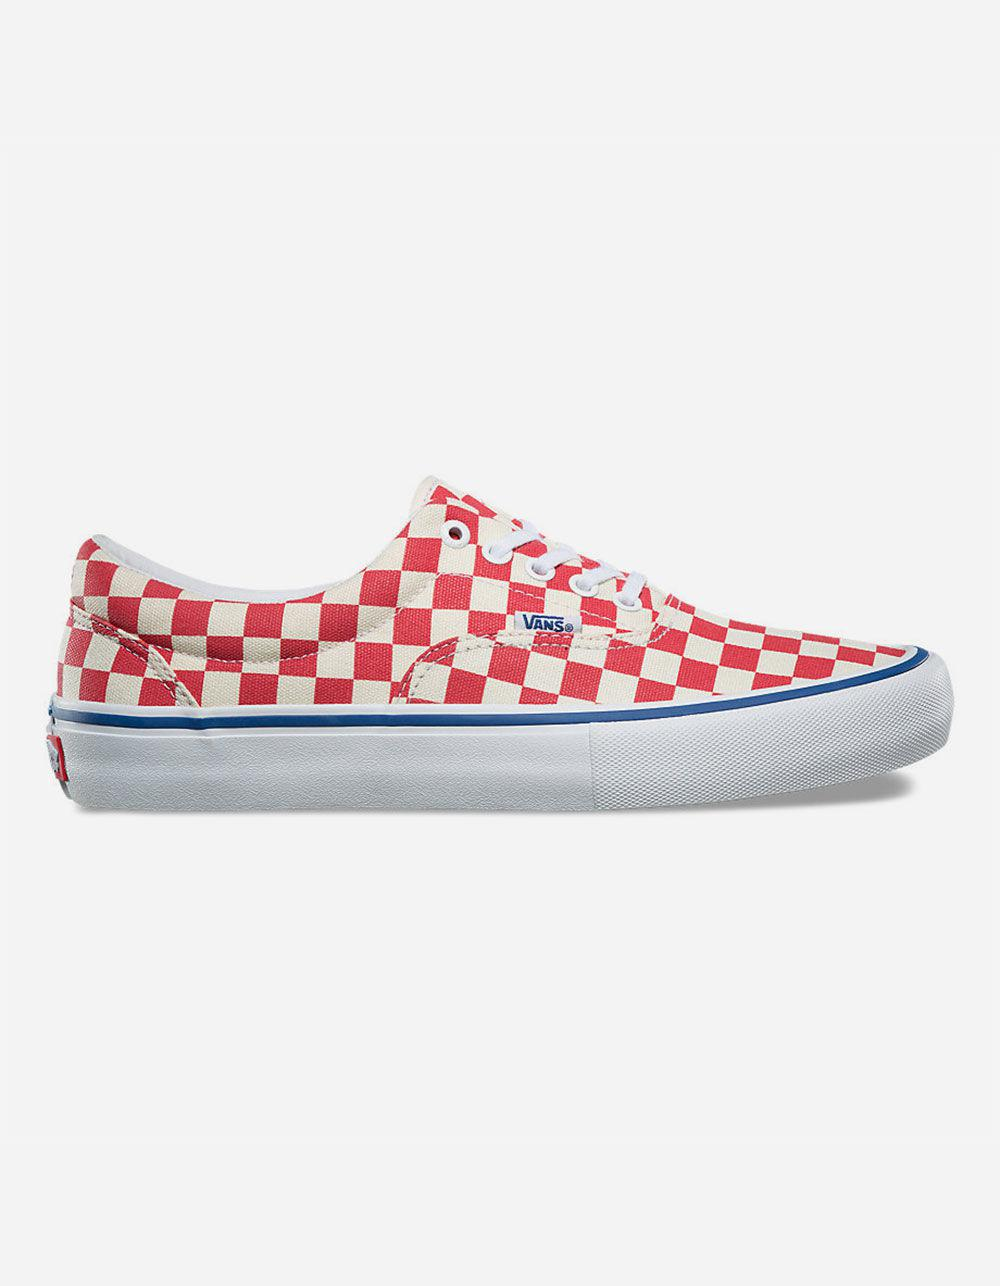 95c747adcb25 Vans - Red Checkerboard Era Pro Shoes - Lyst. View fullscreen